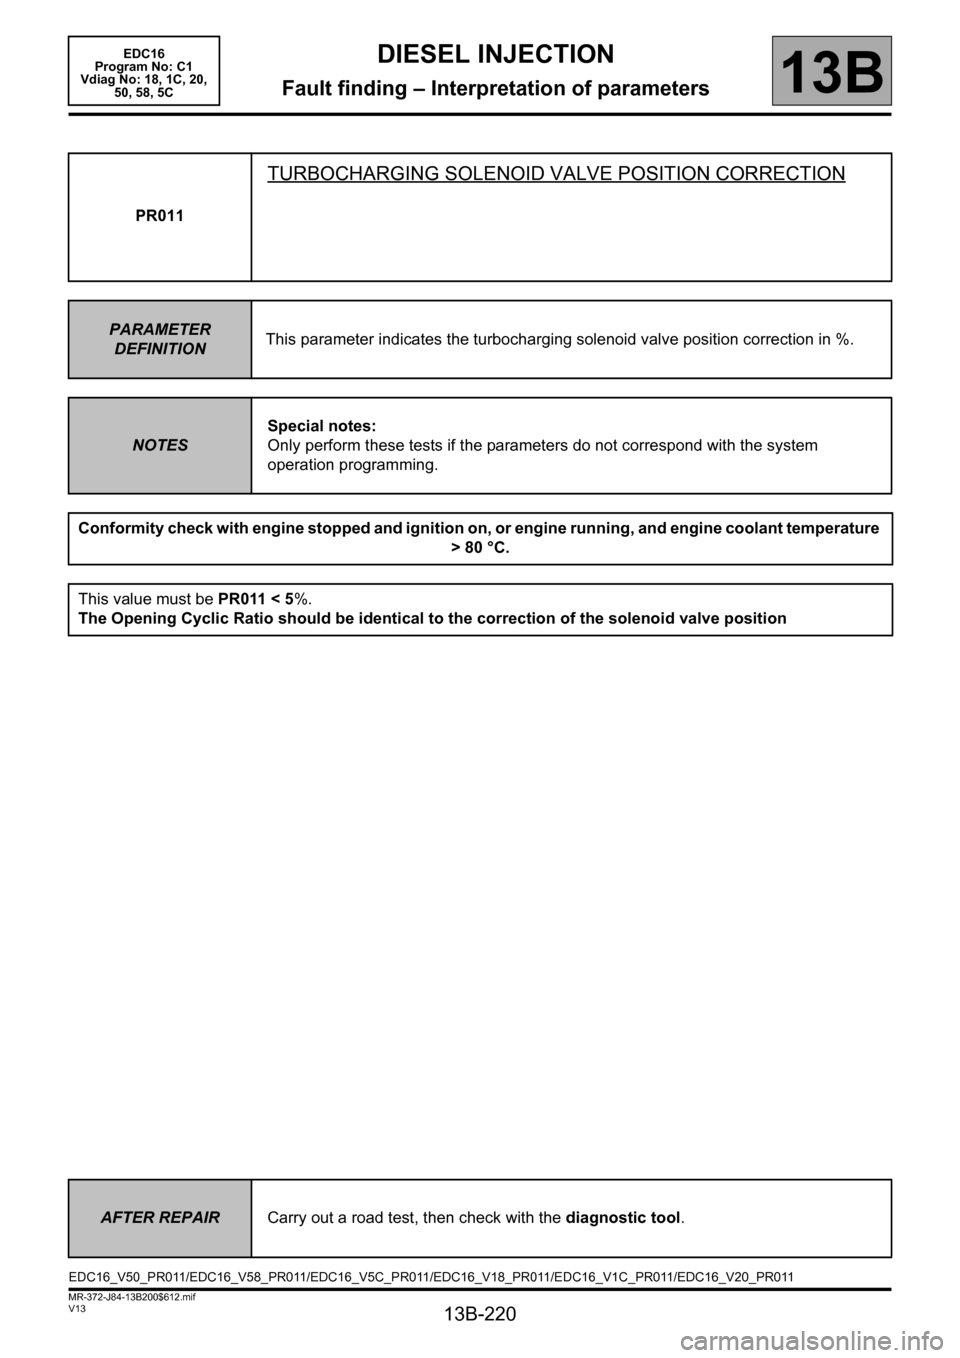 RENAULT SCENIC 2011 J95 / 3.G Engine And Peripherals EDC16 Workshop Manual, Page 220